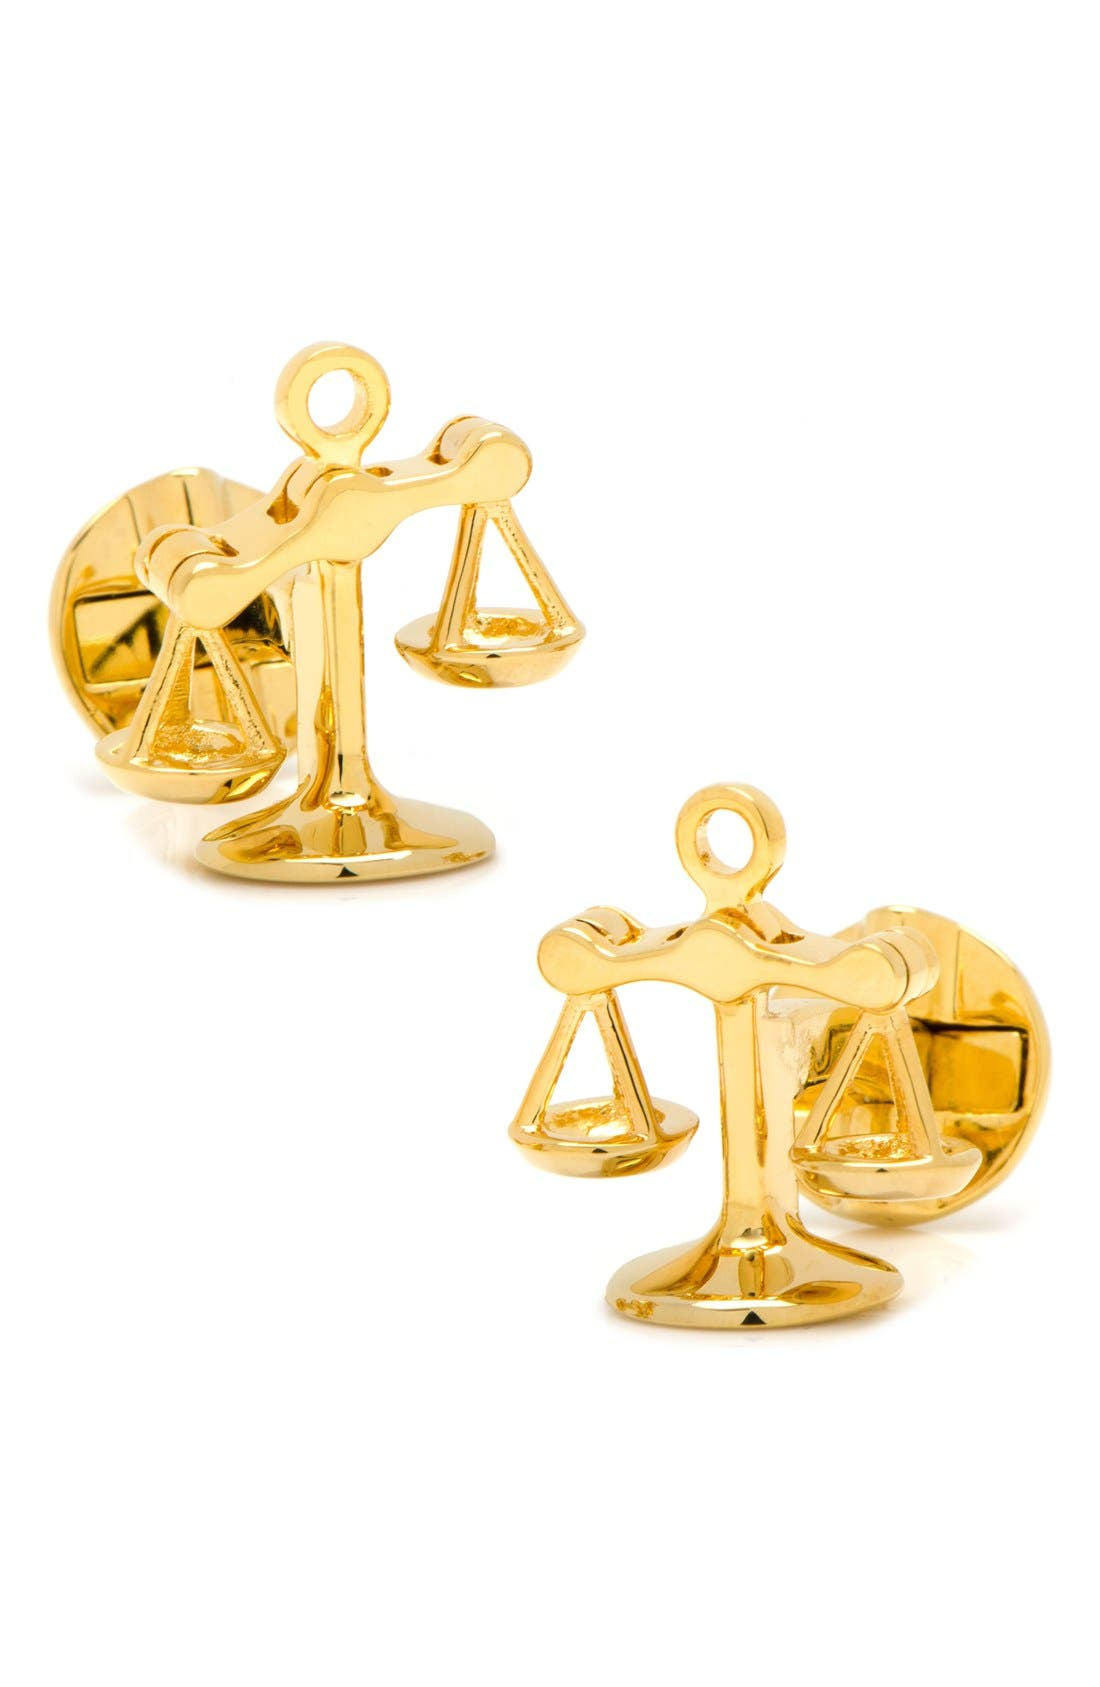 'Scales of Justice' Cuff Links,                             Main thumbnail 1, color,                             GOLD